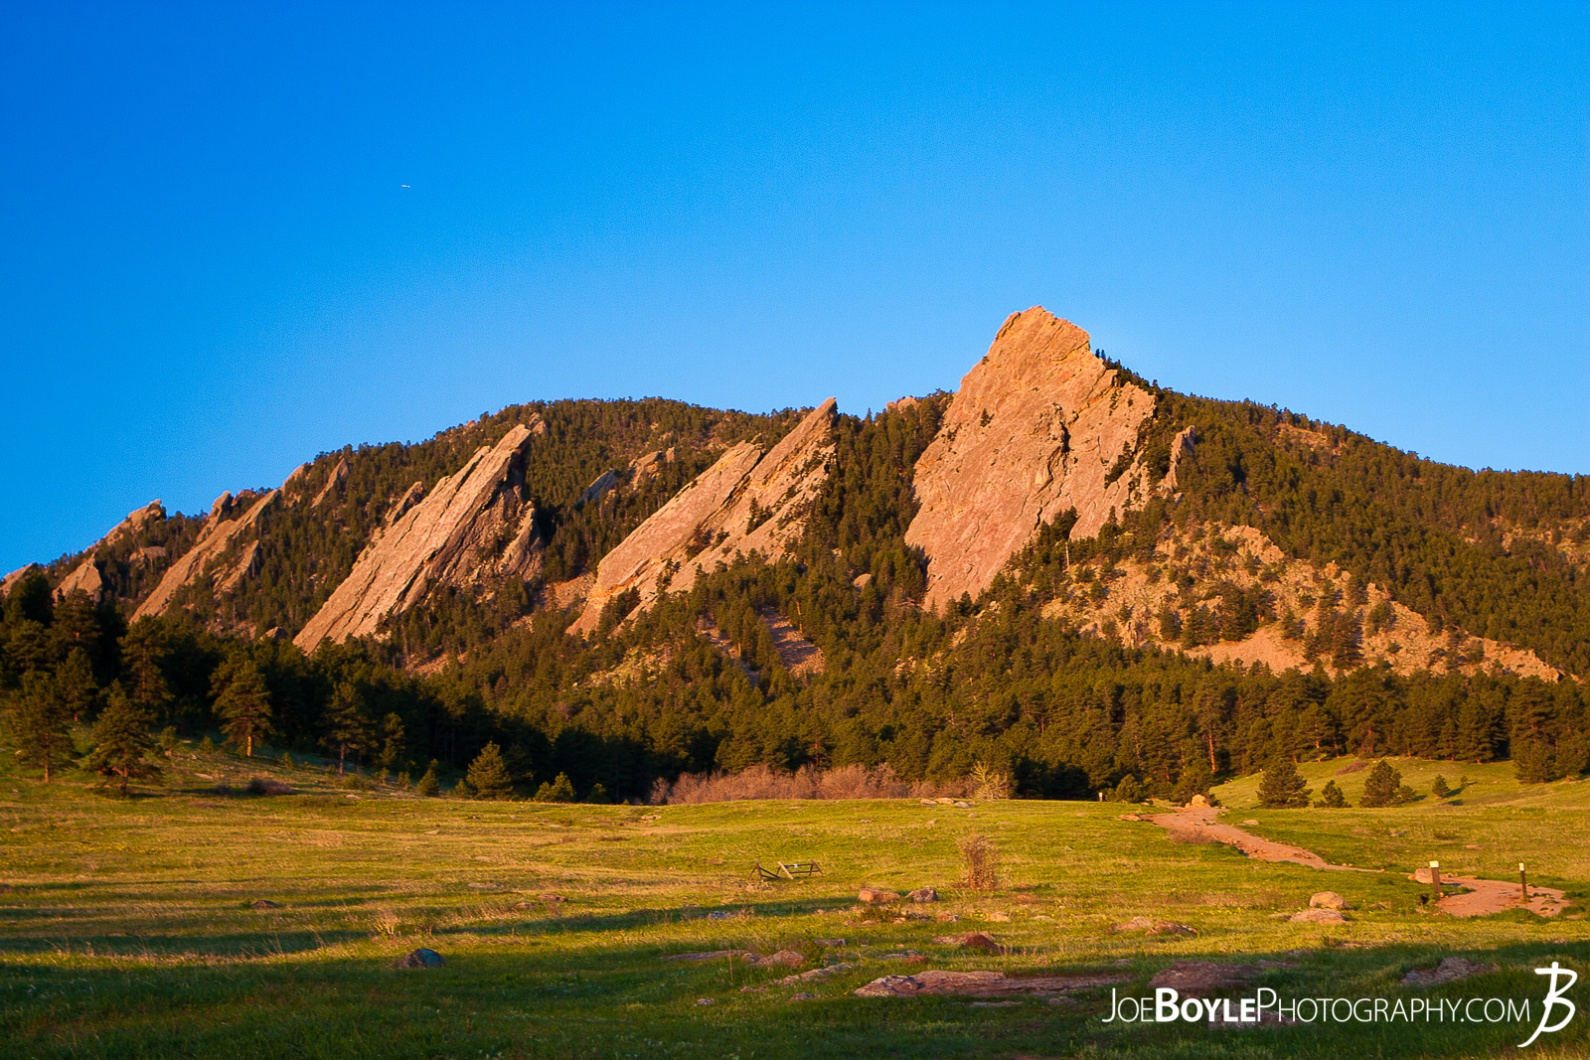 sunrise-in-boulder-colorado-ii-chautauqua-state-park